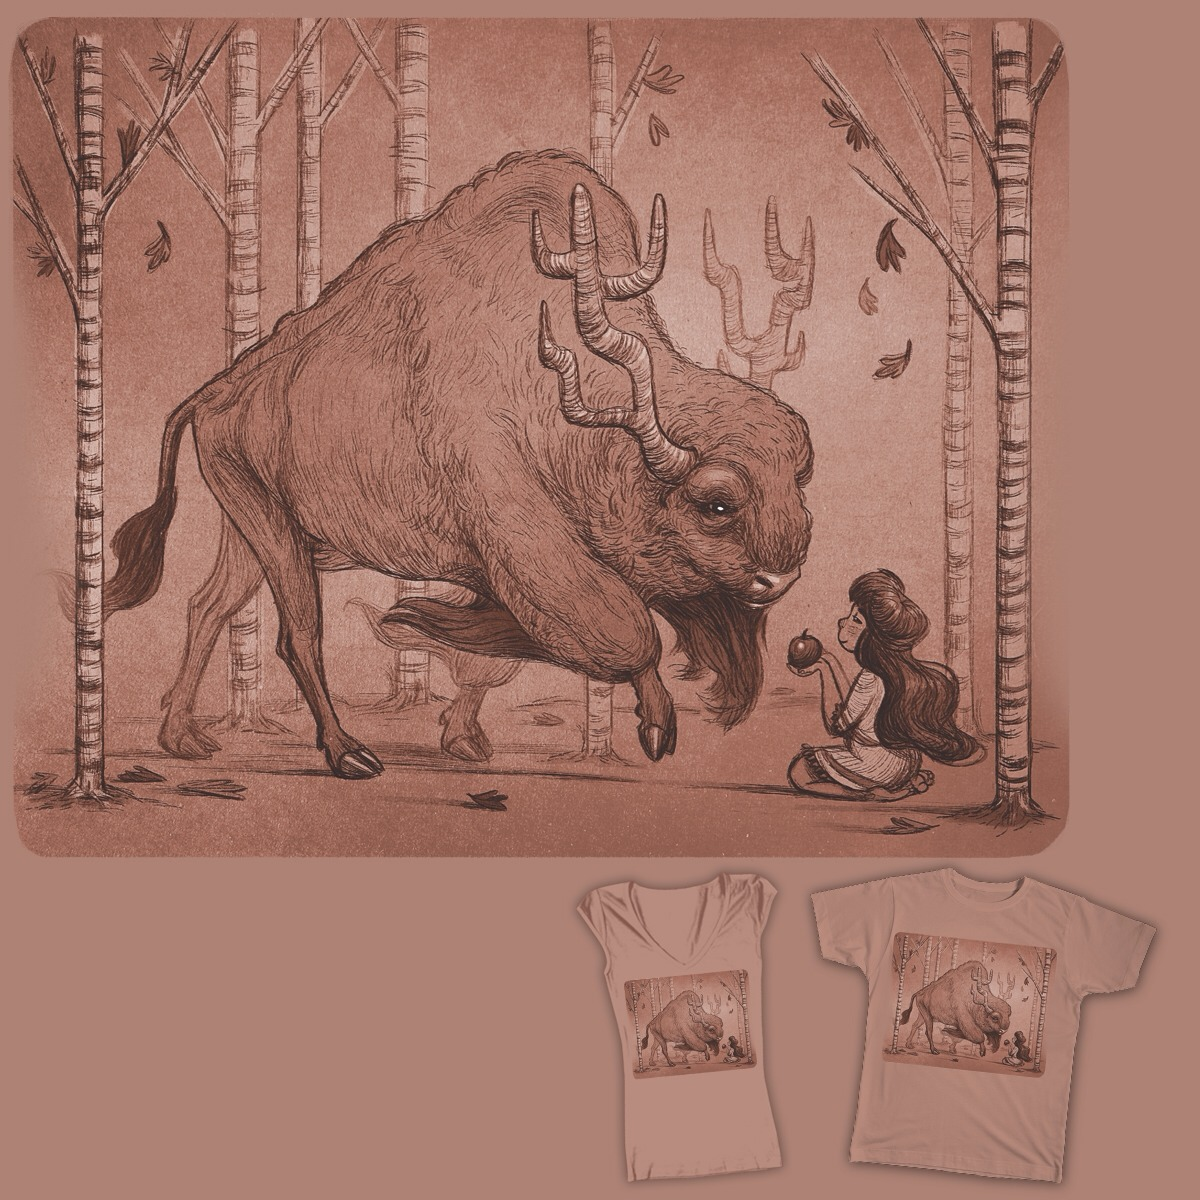 Hey guys! I have a design up on Threadless.com for a contest! I'll be forever grateful if you go vote it a 5! Then you can get it as a tshirt!! Thanks so much! http://www.threadless.com/monochromatic/the-gift-10/